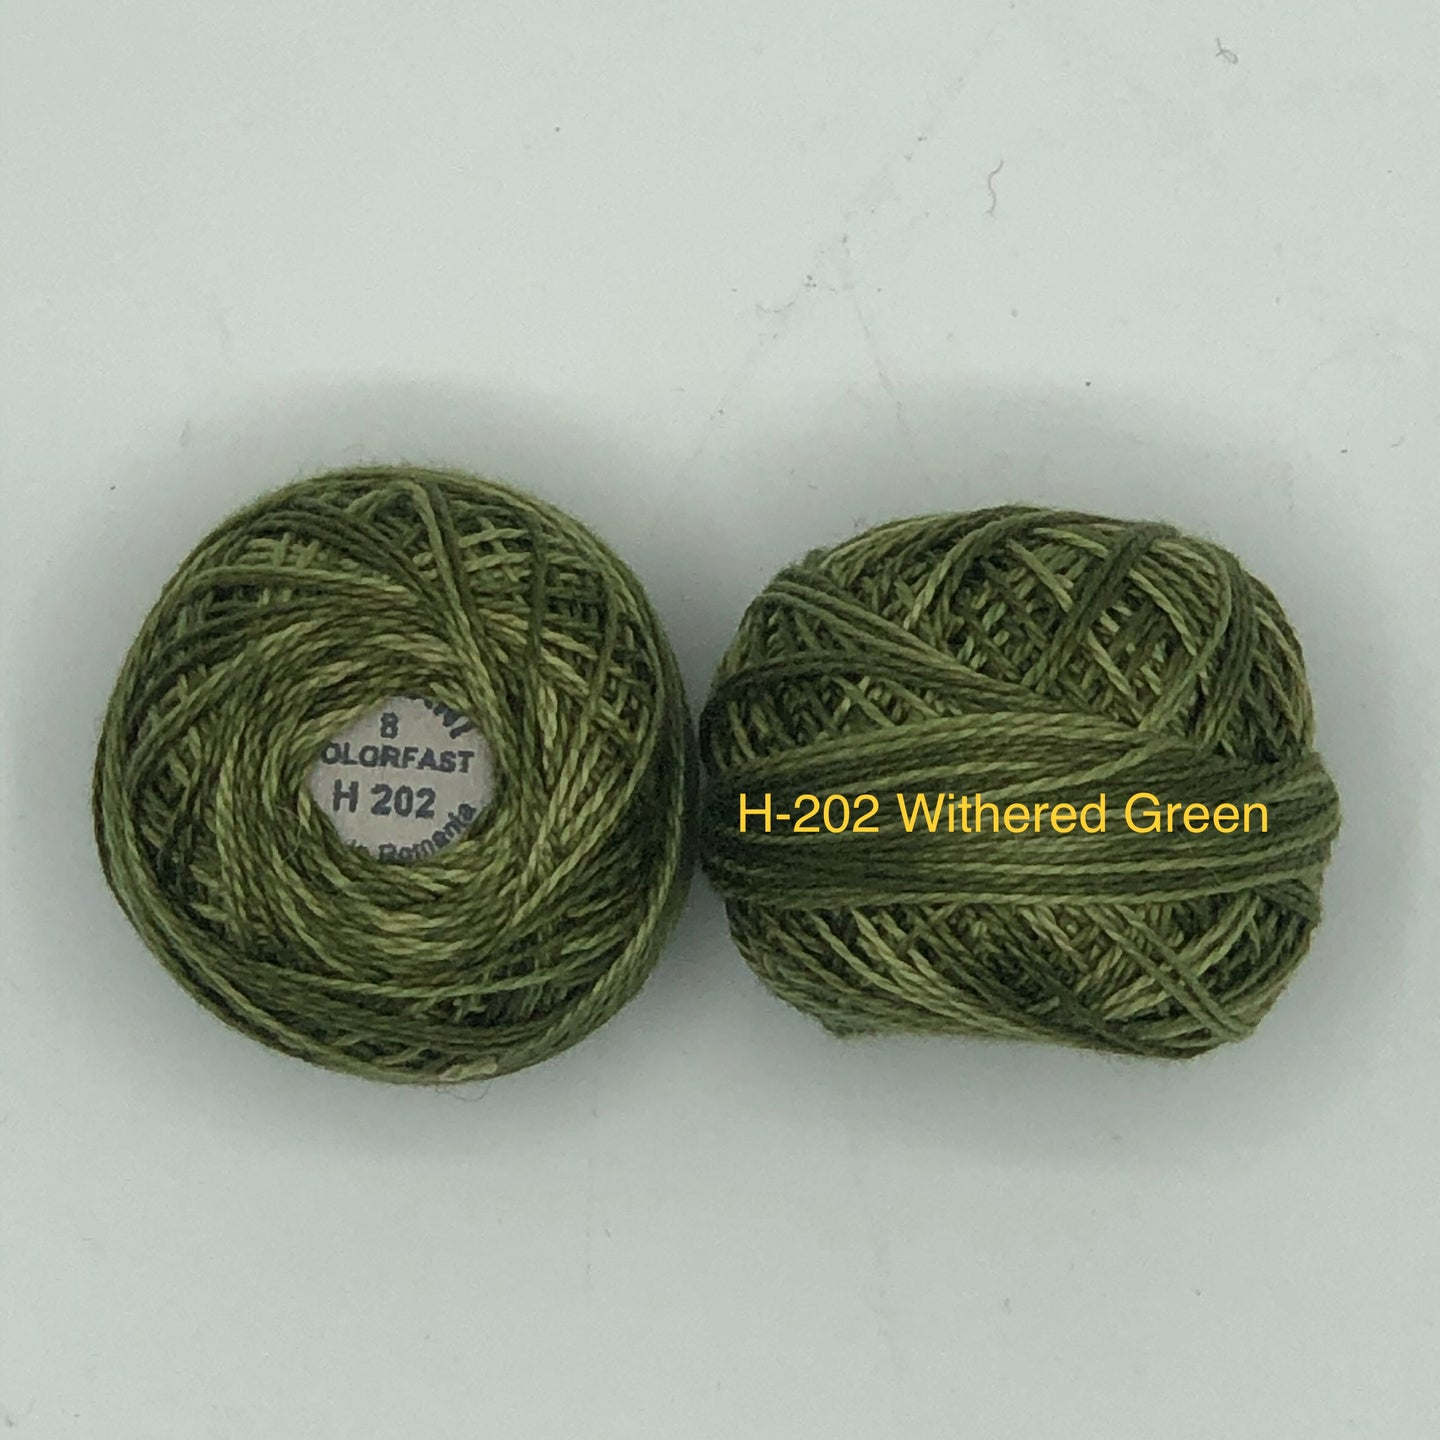 Valdani Thread size 8 Perle Cotton-H-202 Withered Green